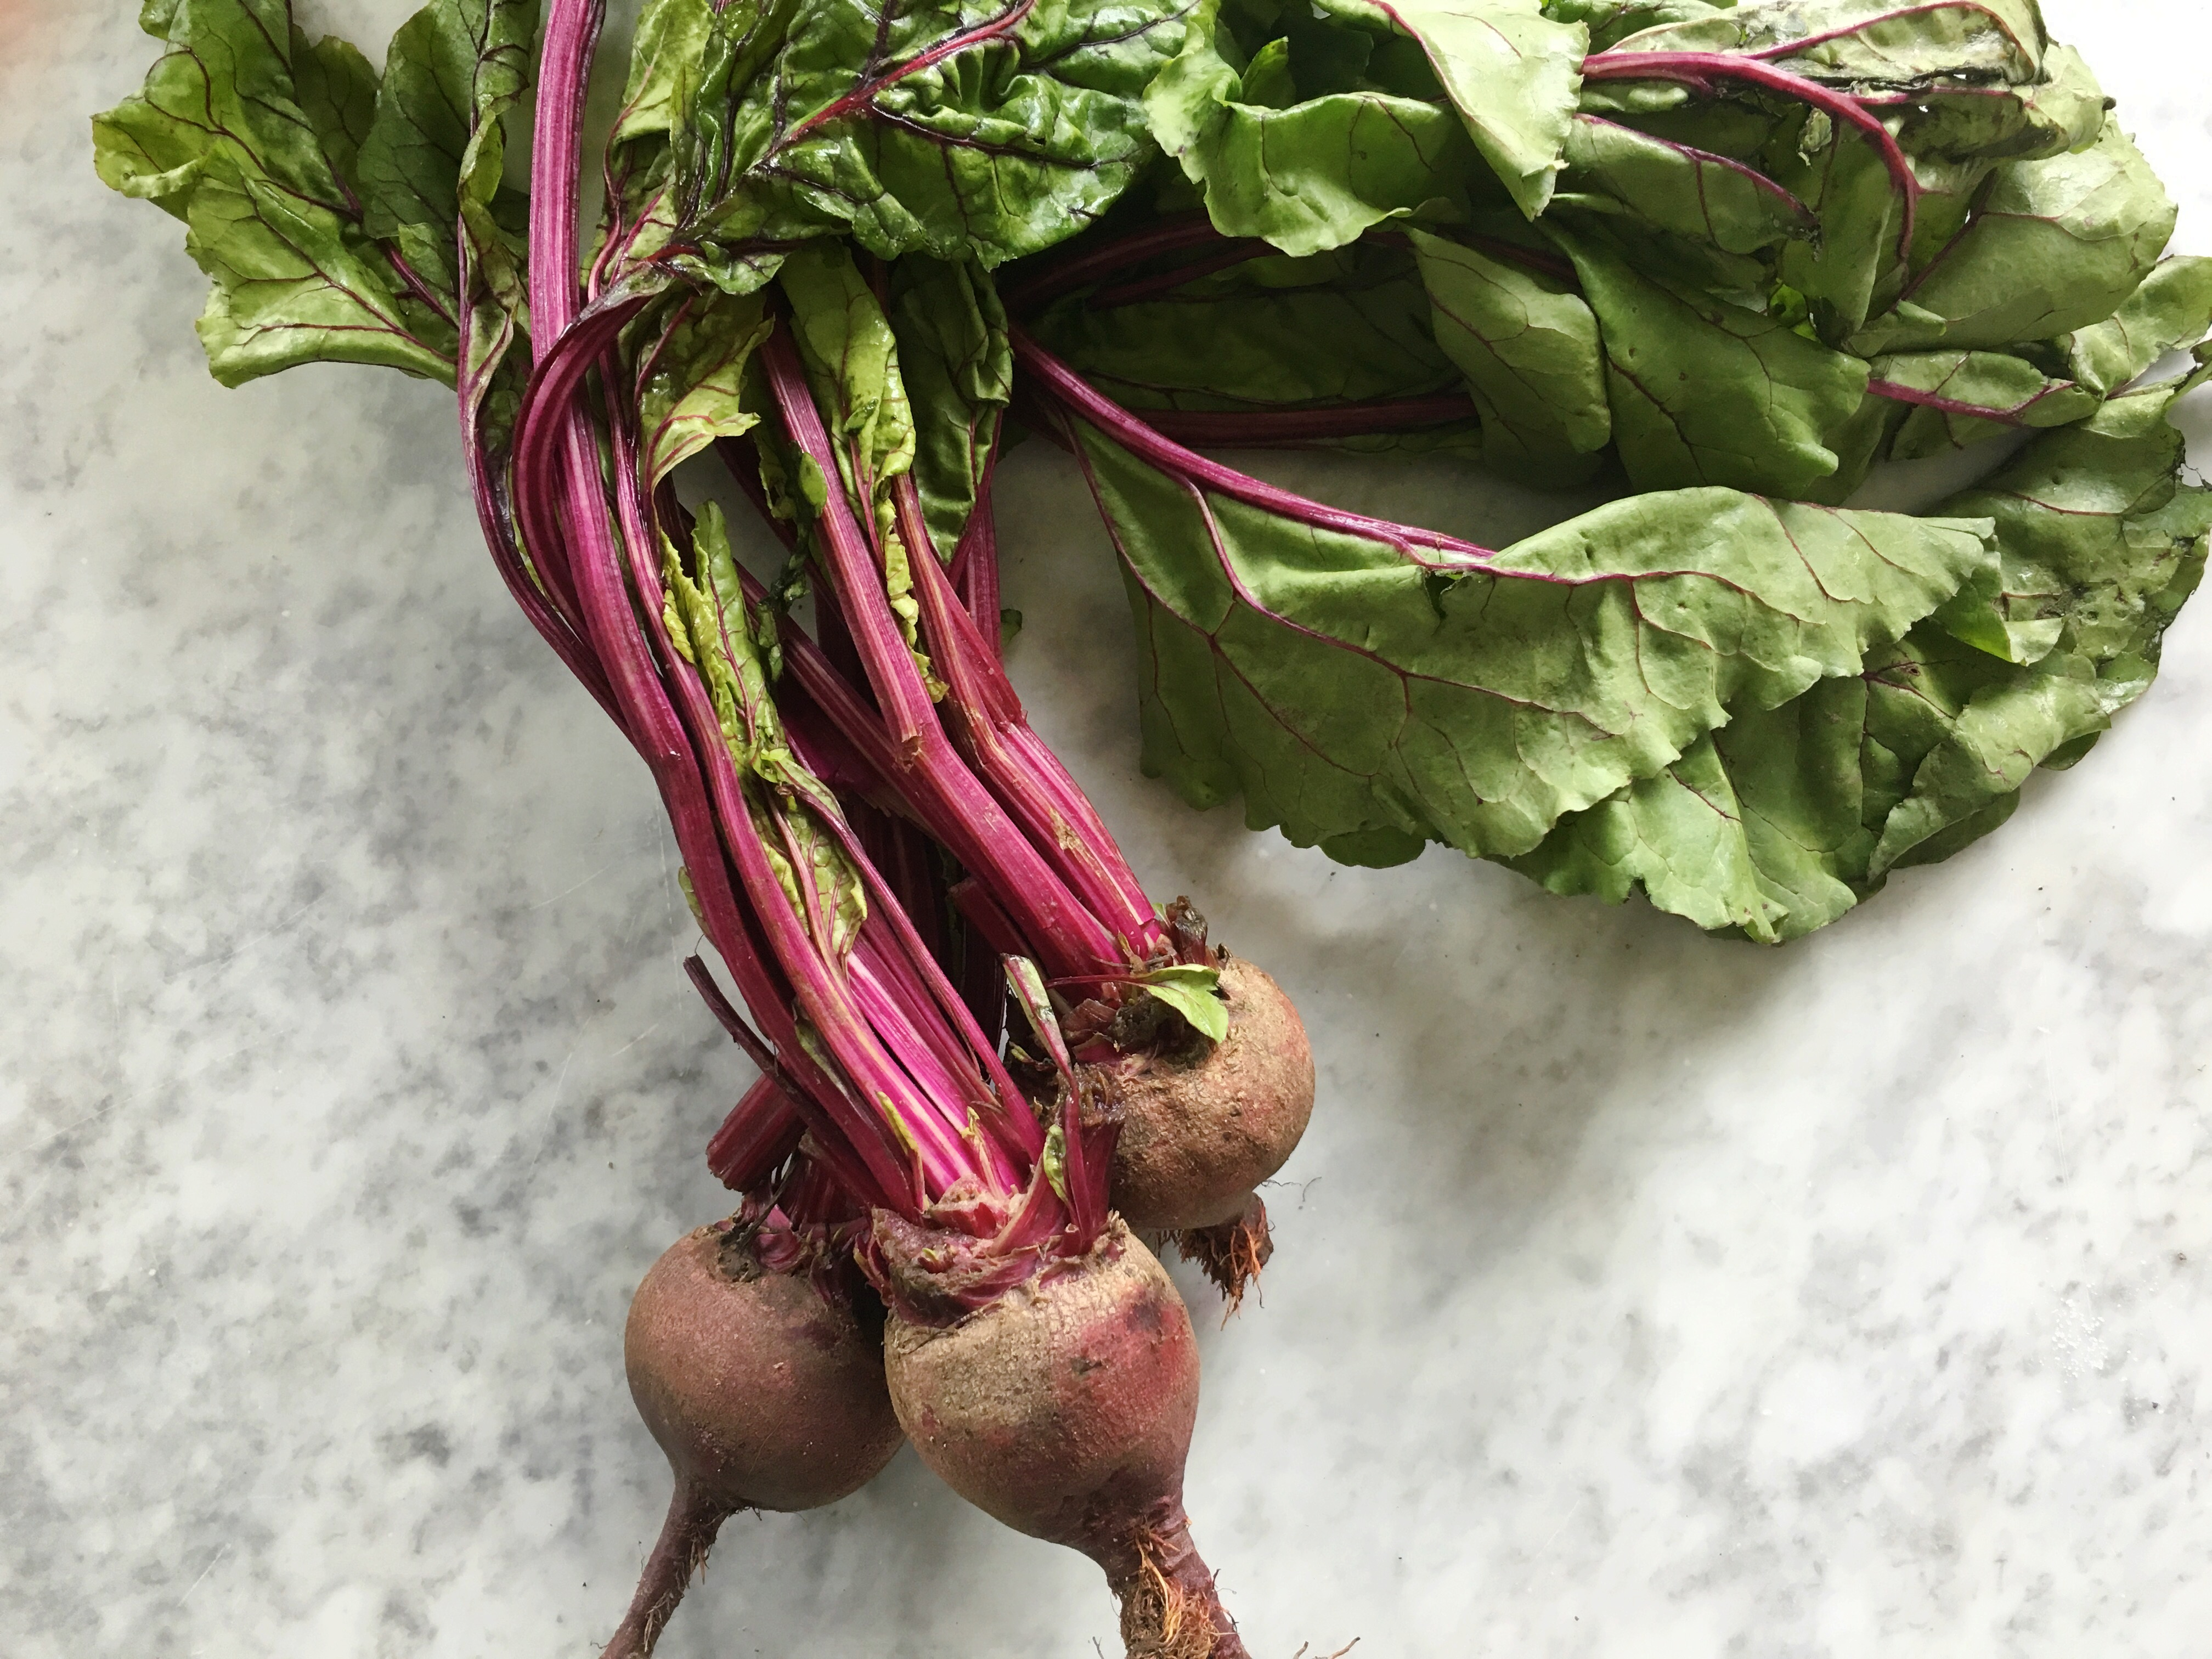 Comfortable Sand Keep How To Use Whole Beet Root Cooking Light How To Store Beets After Picking How To Store Beets houzz-03 How To Store Beets